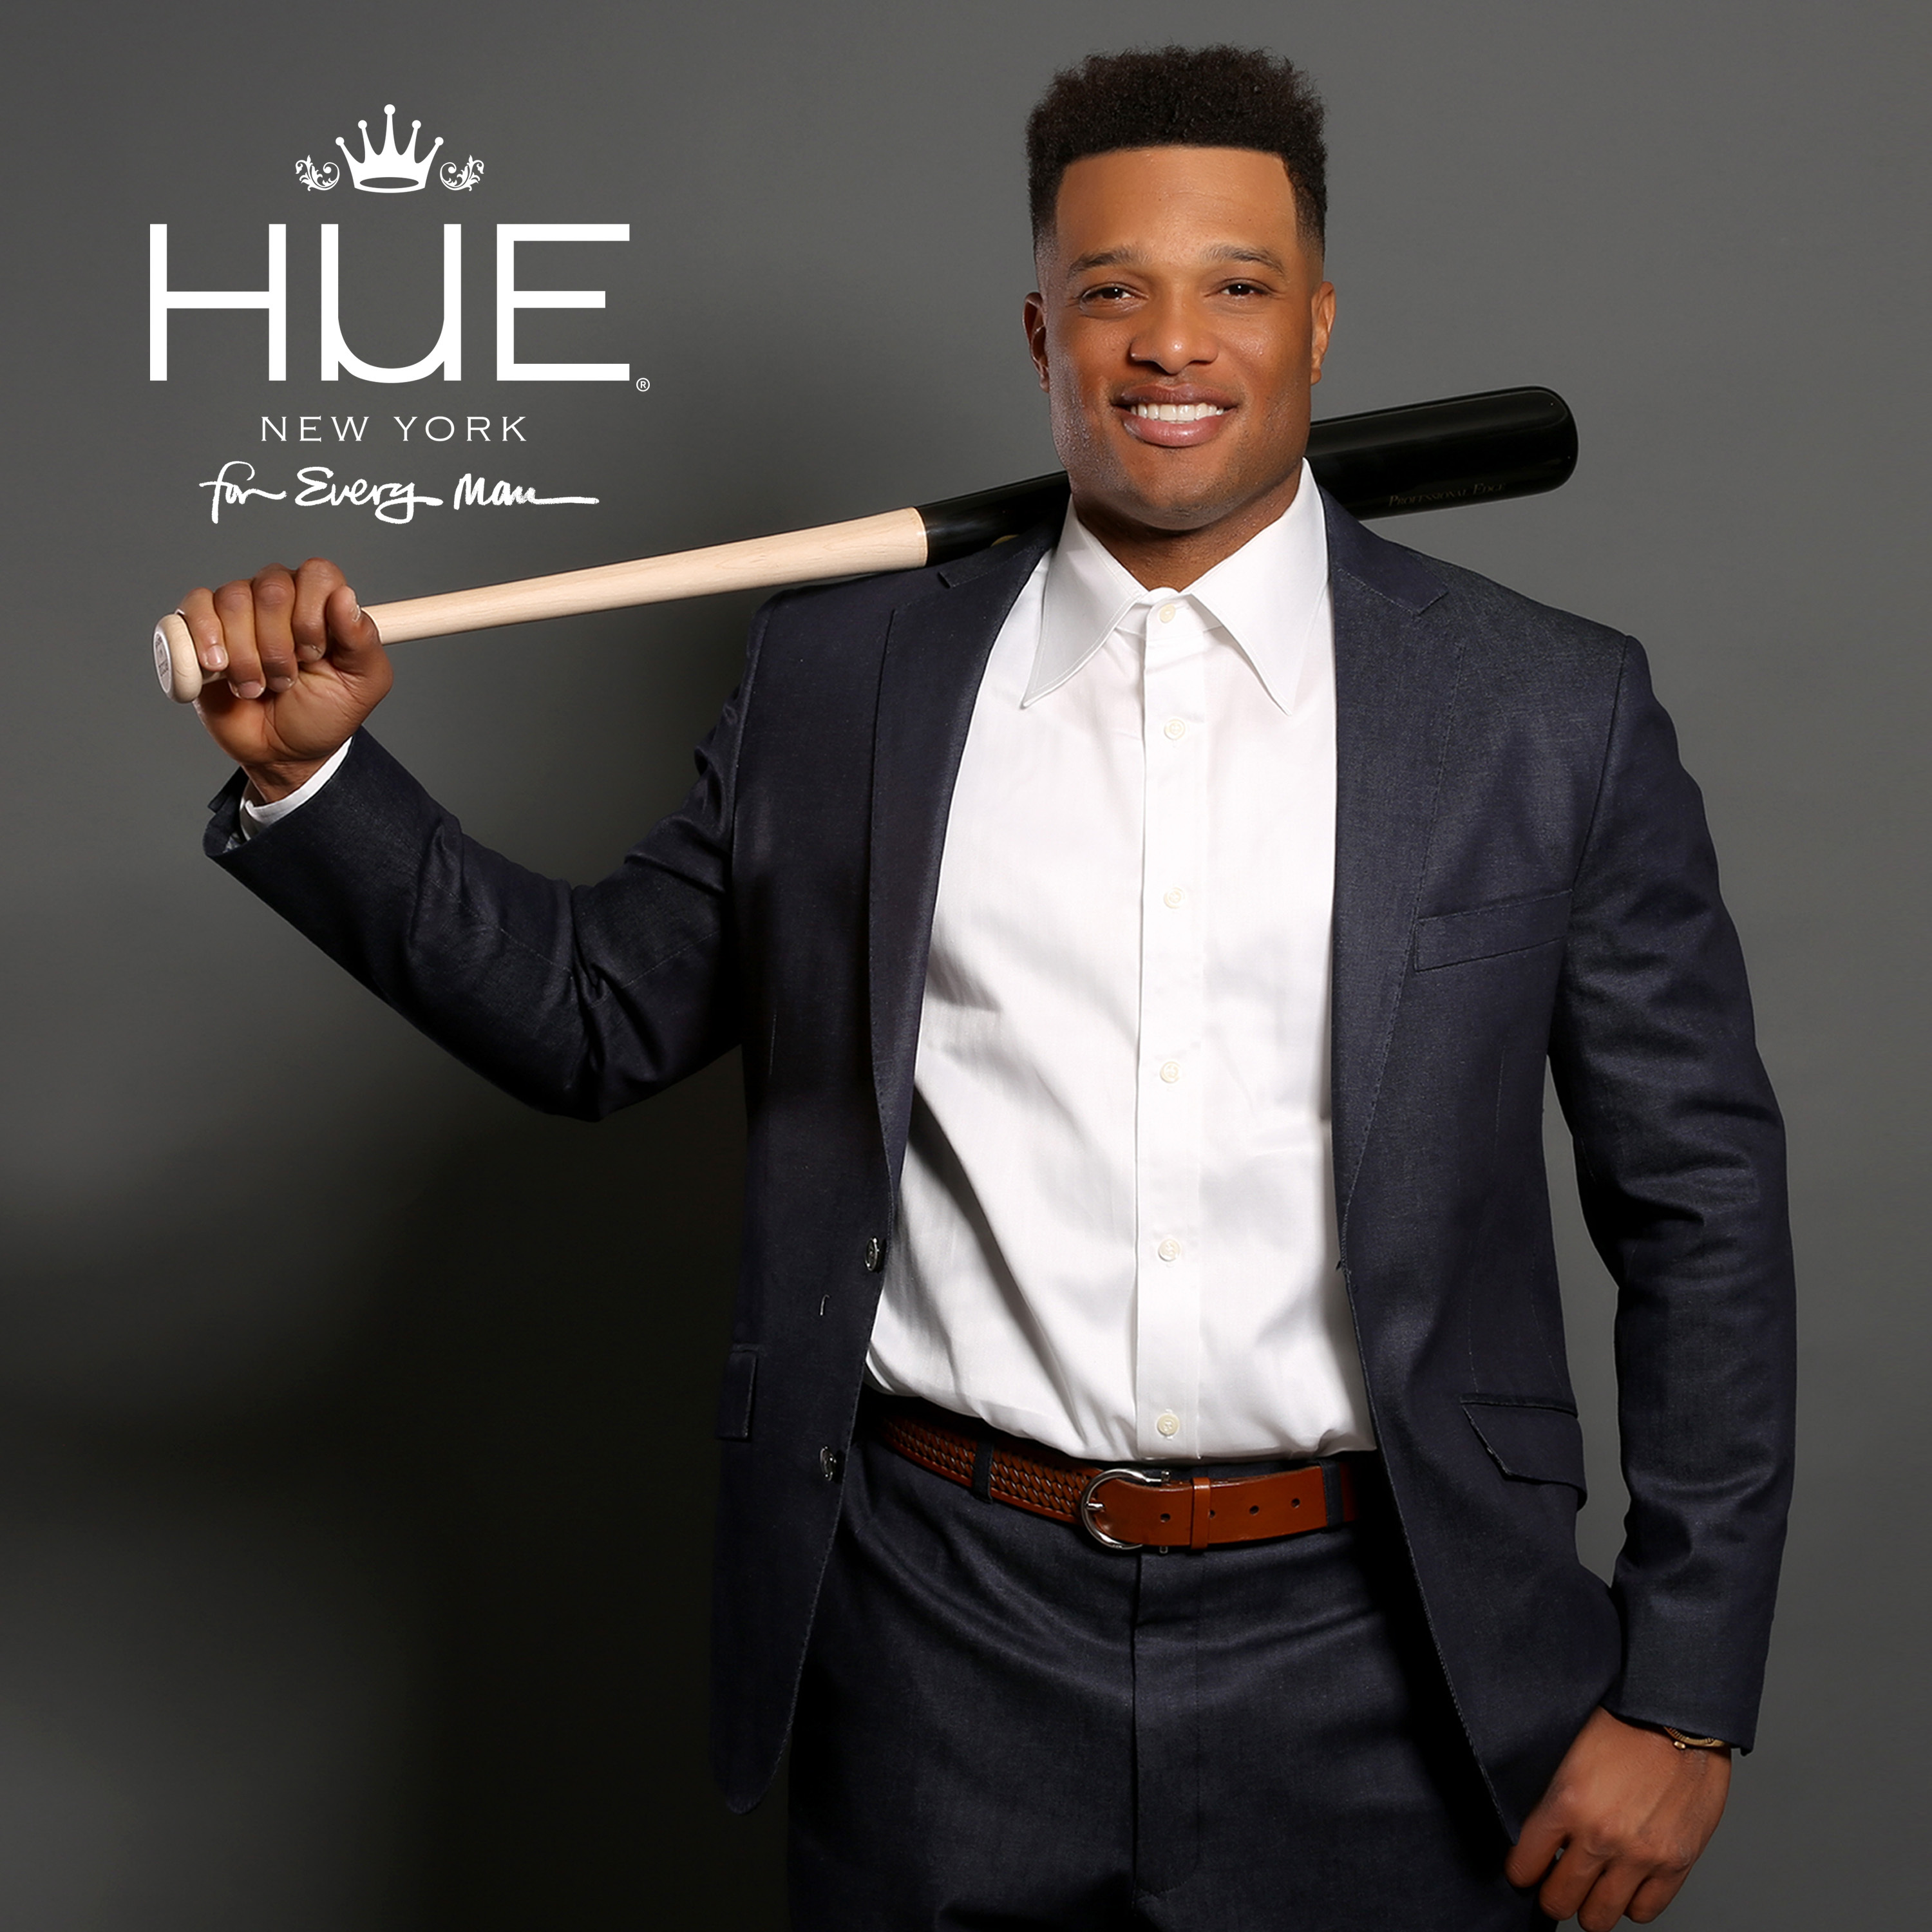 Hue For Every Man Announces Major League Baseball Player And Six